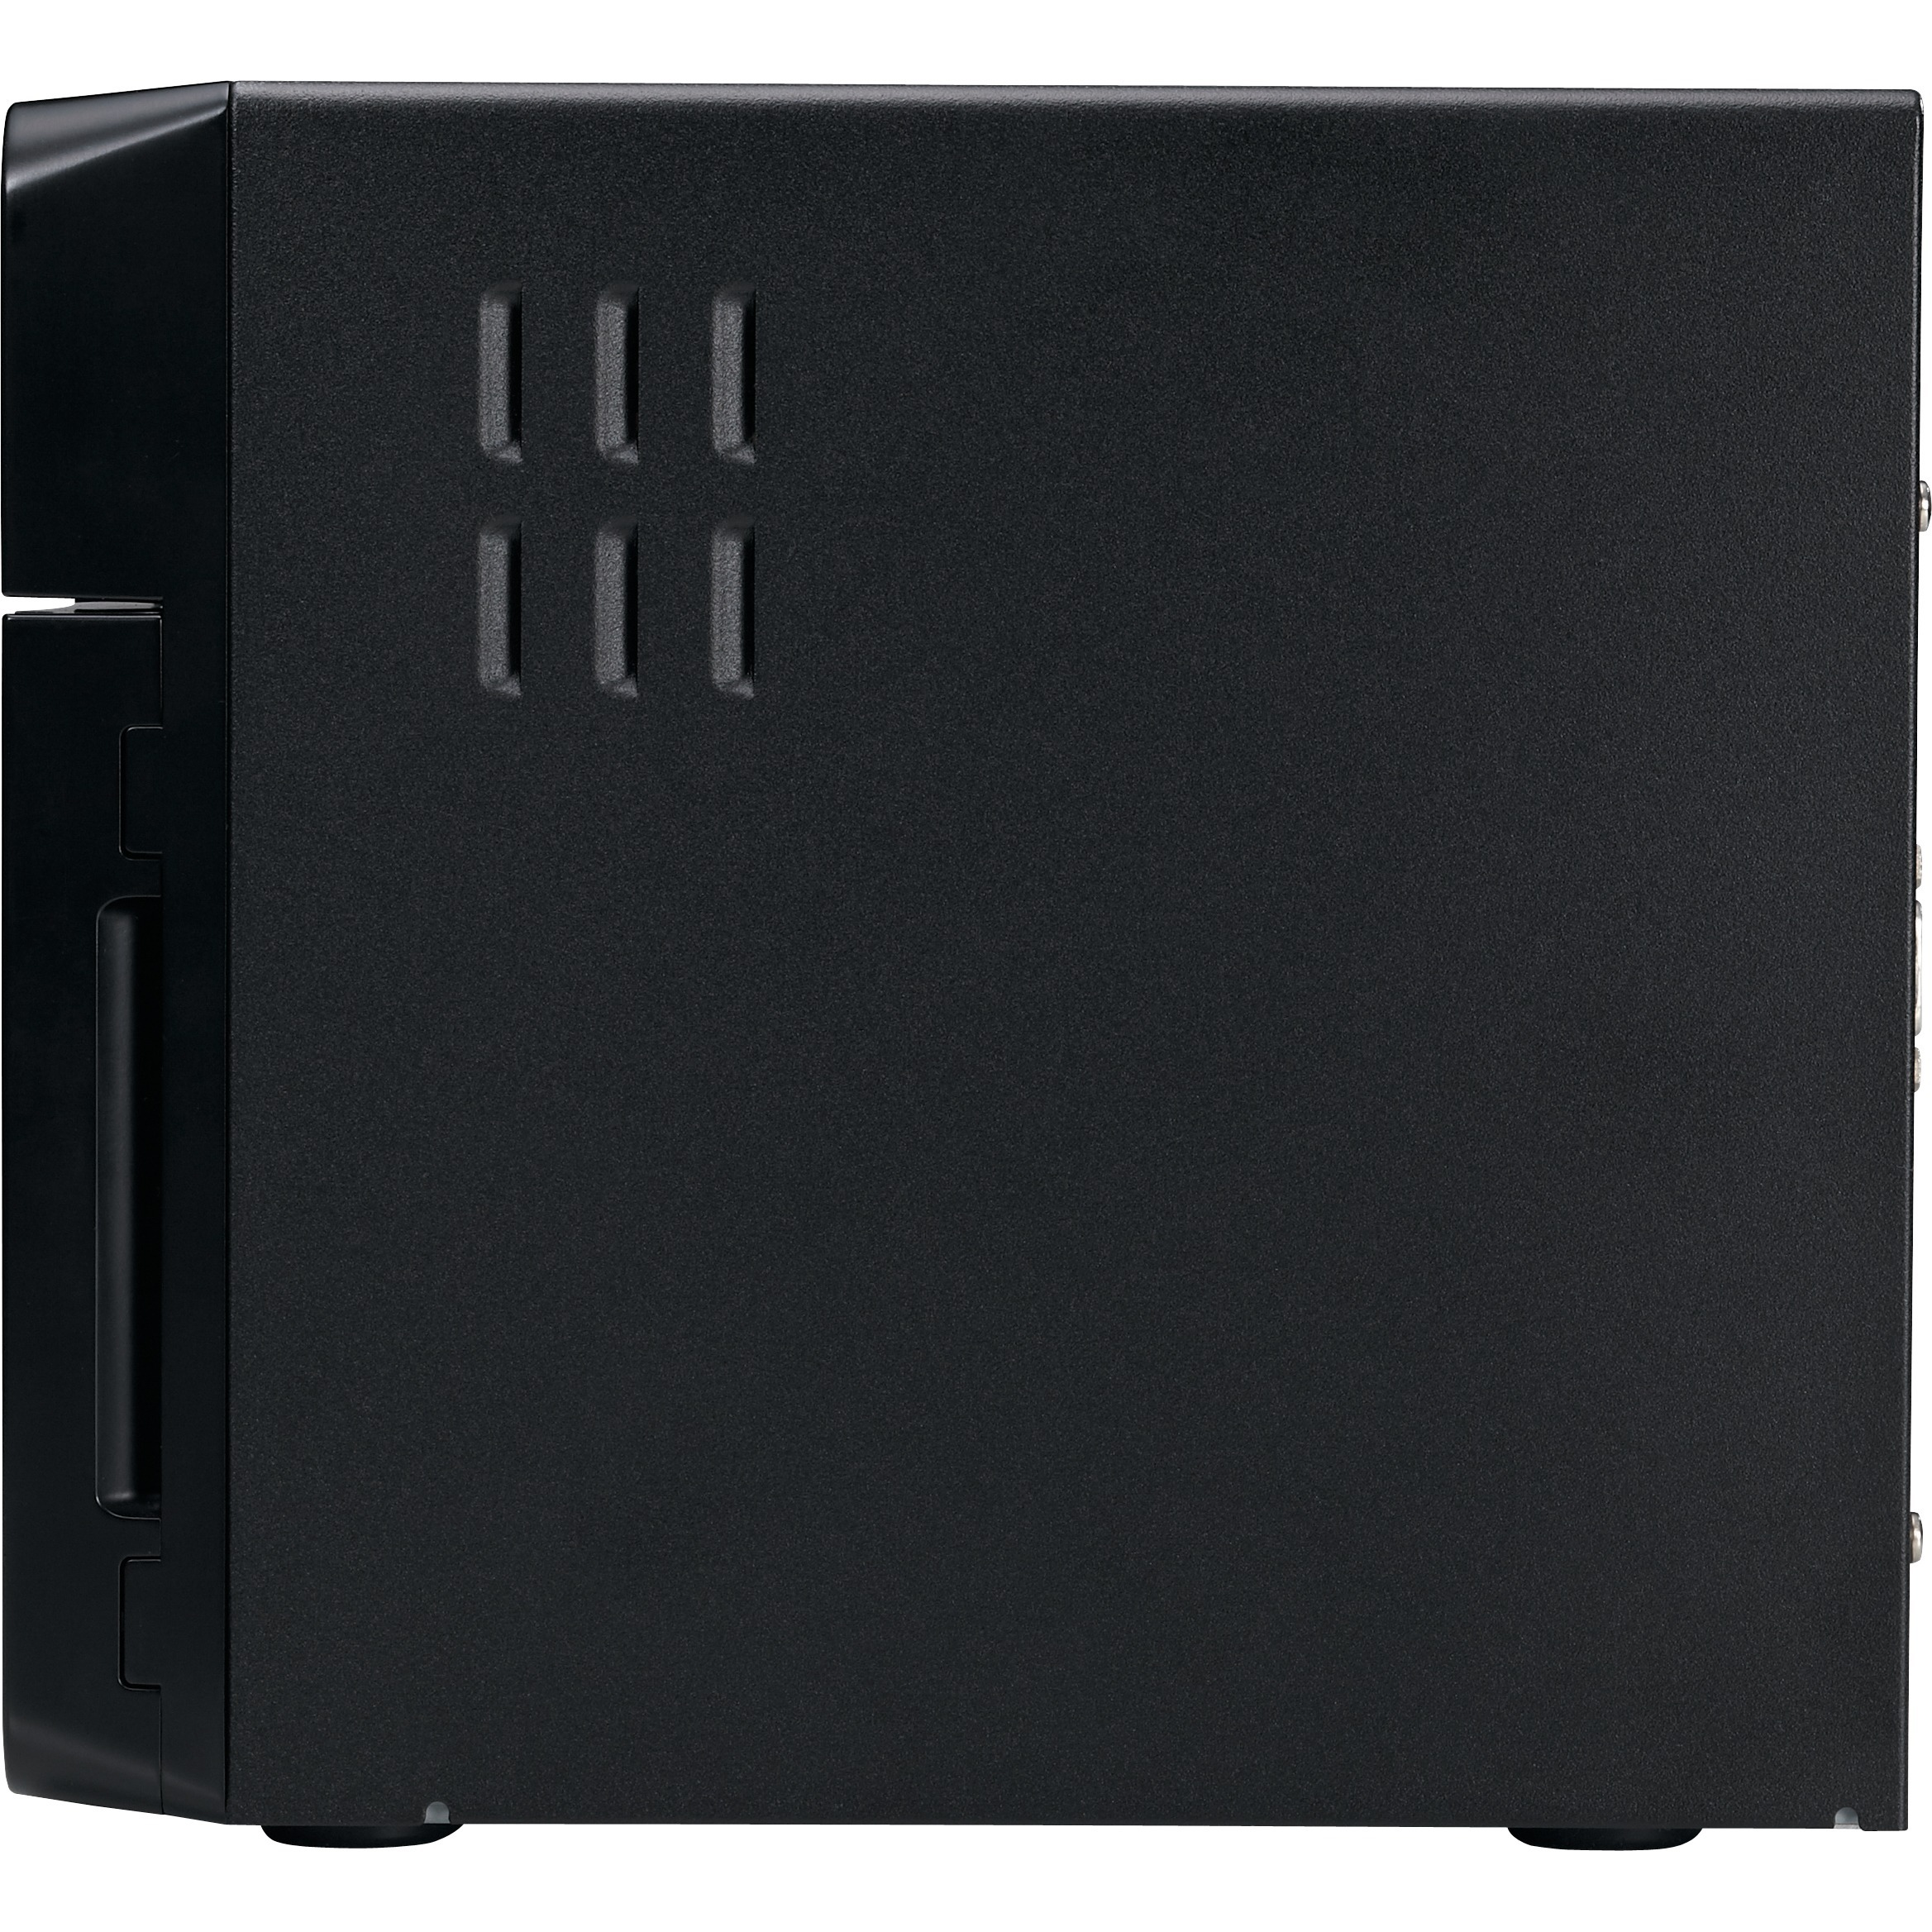 Buffalo TeraStation 8 x Total Bays NAS Server - Desktop - 1 x Intel Atom D2700 Dual-core 2 Core 2.13 GHz - 48 TB HDD - 2 GB RAM DDR3 SDRAM - Serial ATA/300 - RAID